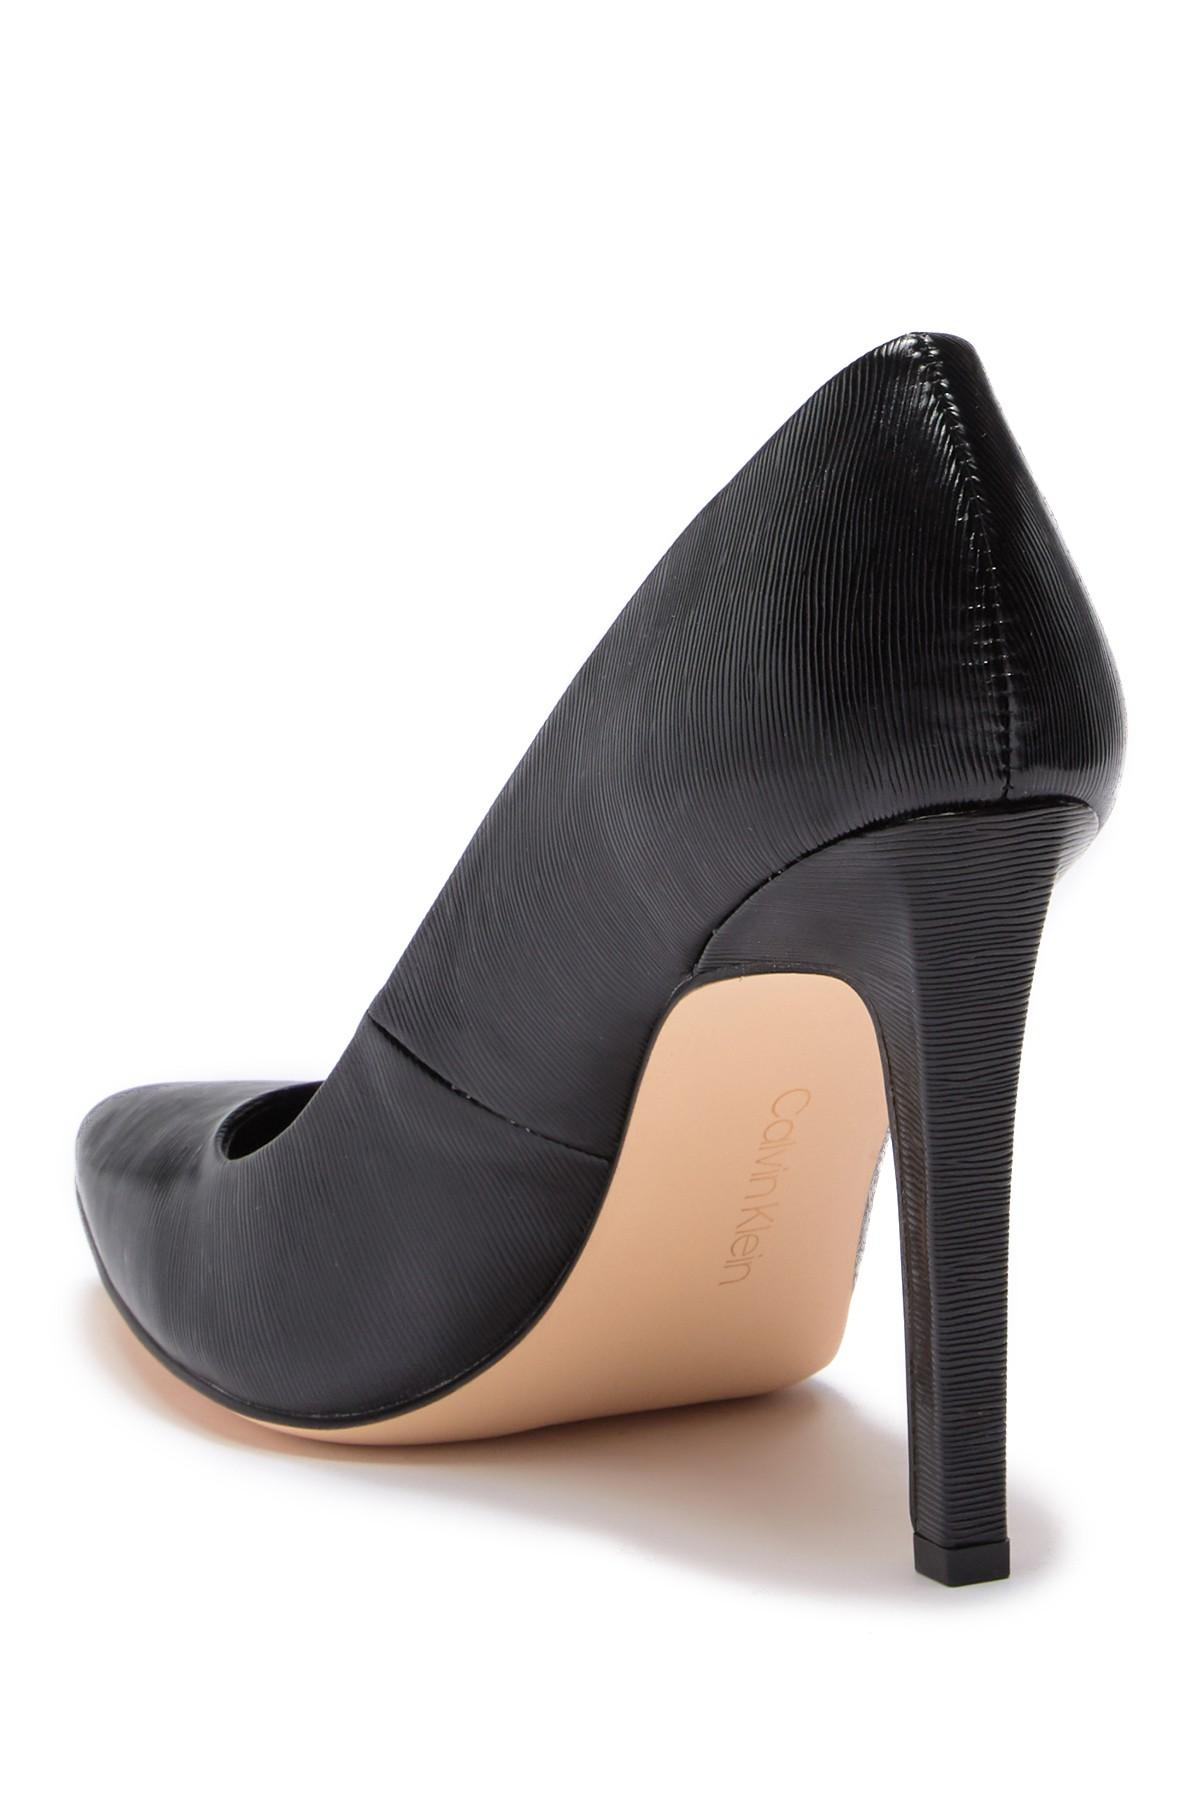 e2229c1f8e0 Calvin Klein - Black Brady Liquid Smooth Patent Pump - Lyst. View fullscreen